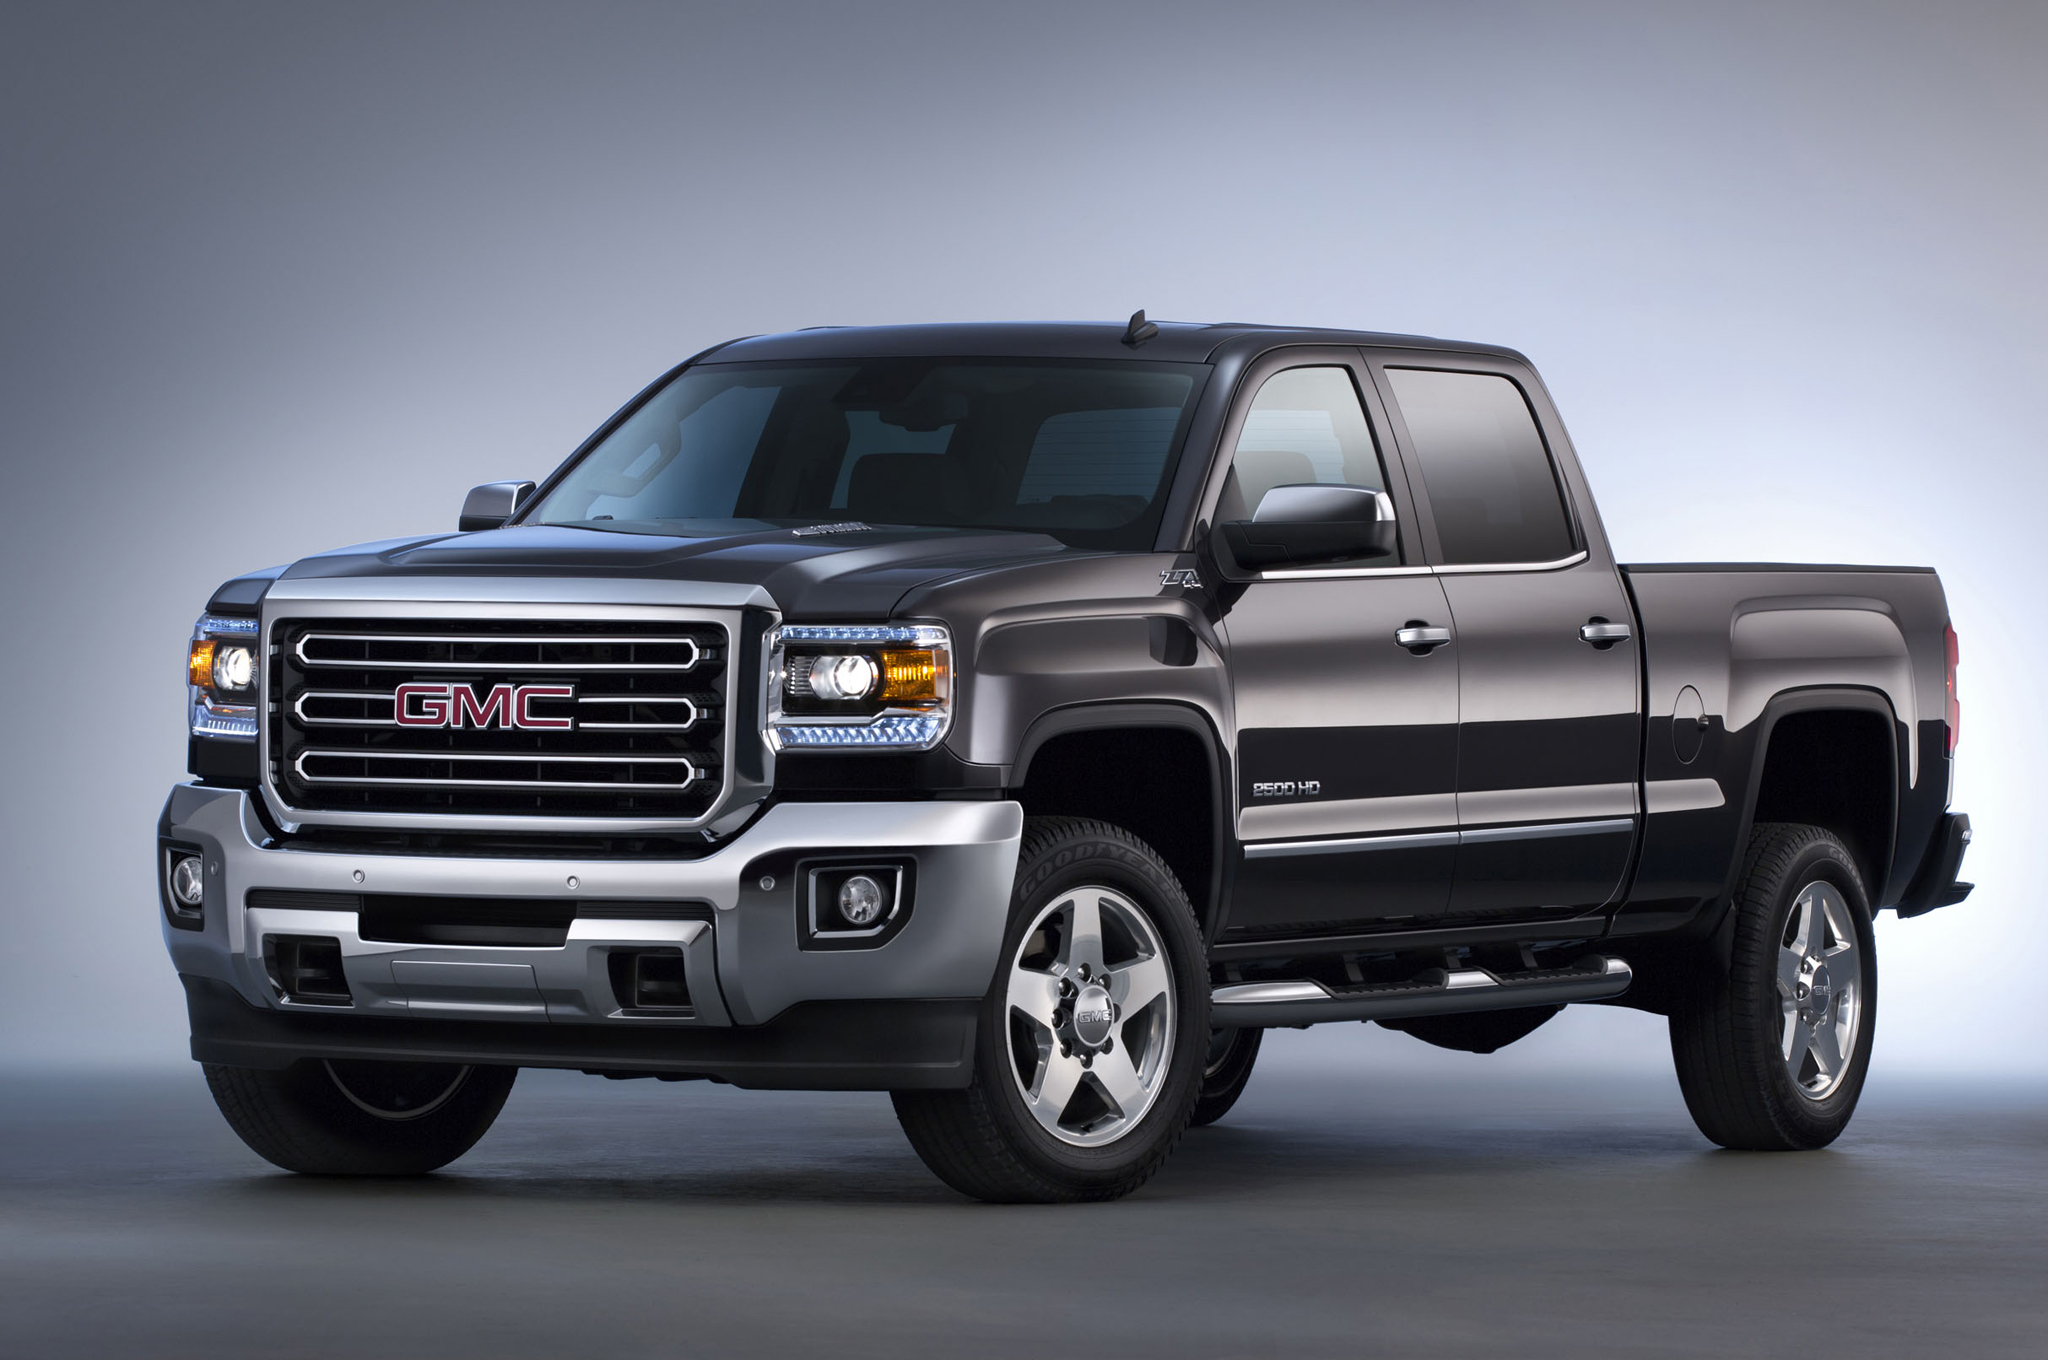 GMC Sierra 2500HD #9